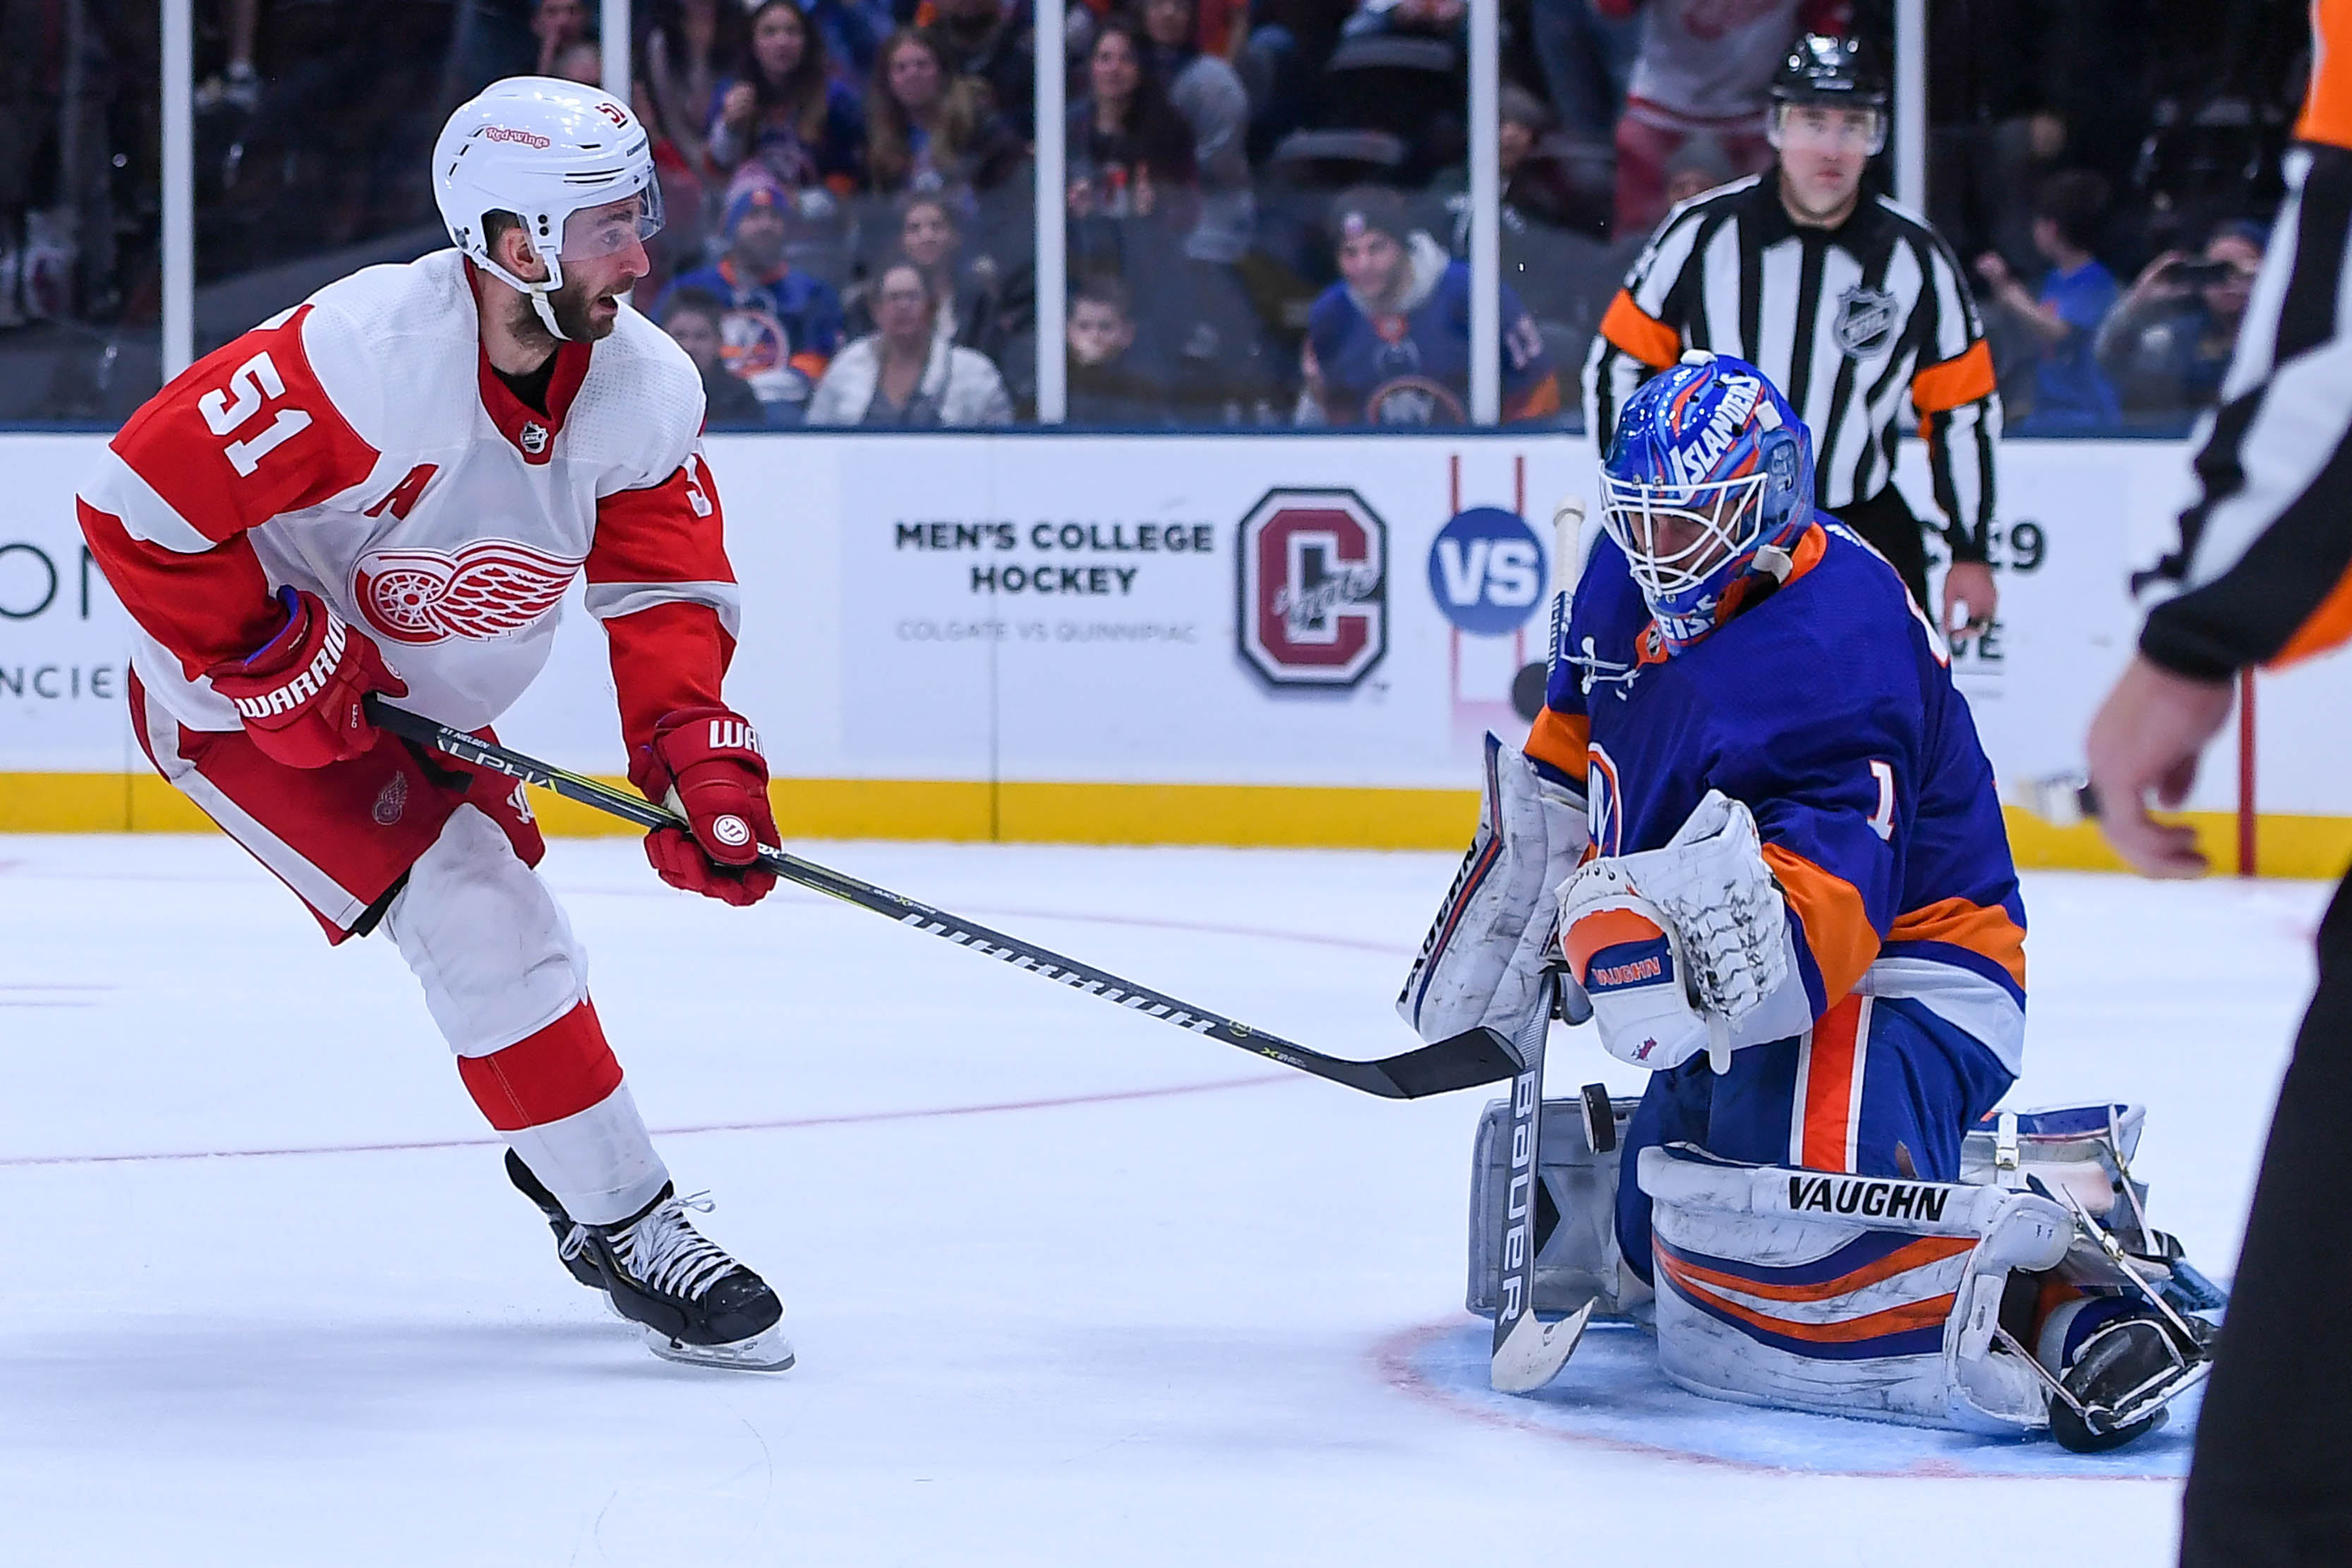 Dec 15, 2018; Uniondale, NY, USA; New York Islanders goaltender Thomas Greiss (1) makes a save on Detroit Red Wings center Frans Nielsen (51) during shootouts at Nassau Veterans Memorial Coliseum. Mandatory Credit: Dennis Schneidler-USA TODAY Sports